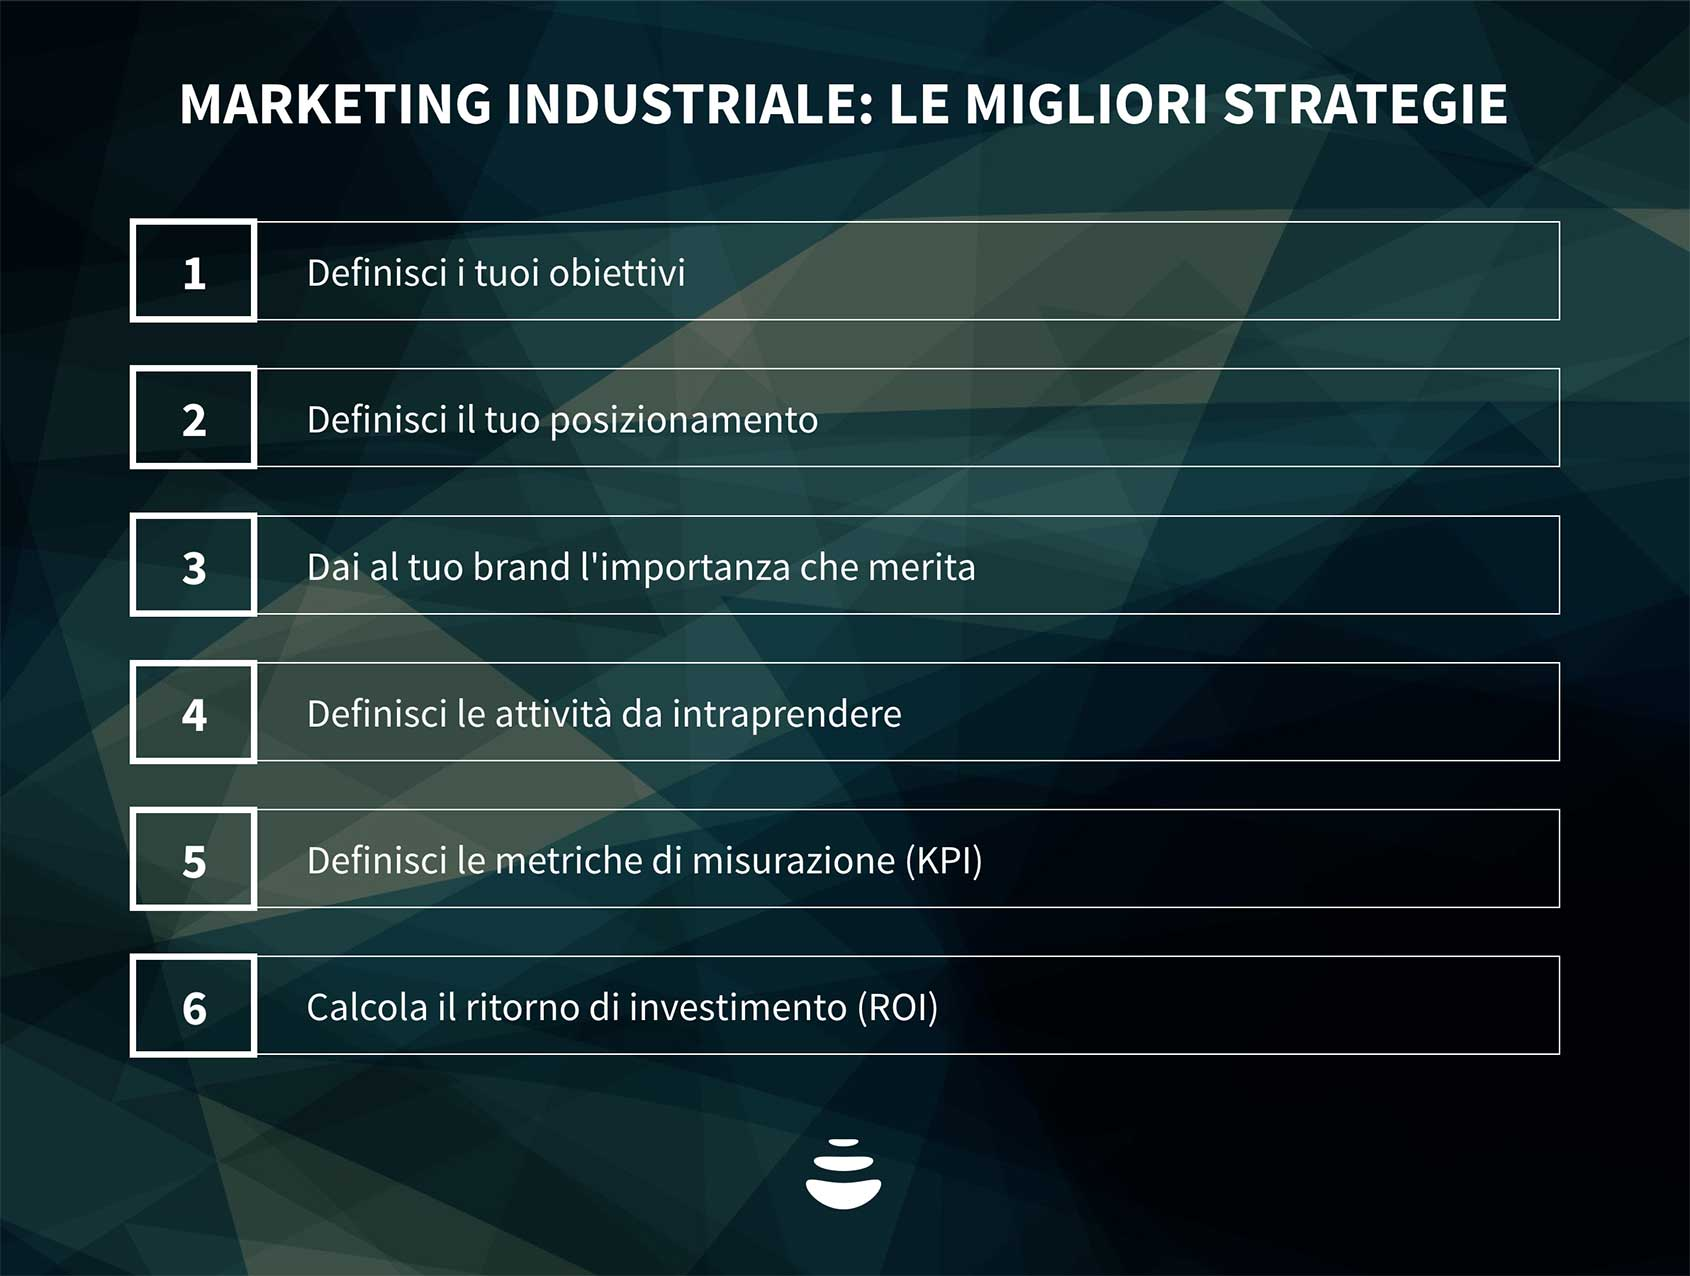 marketing industriale strategia